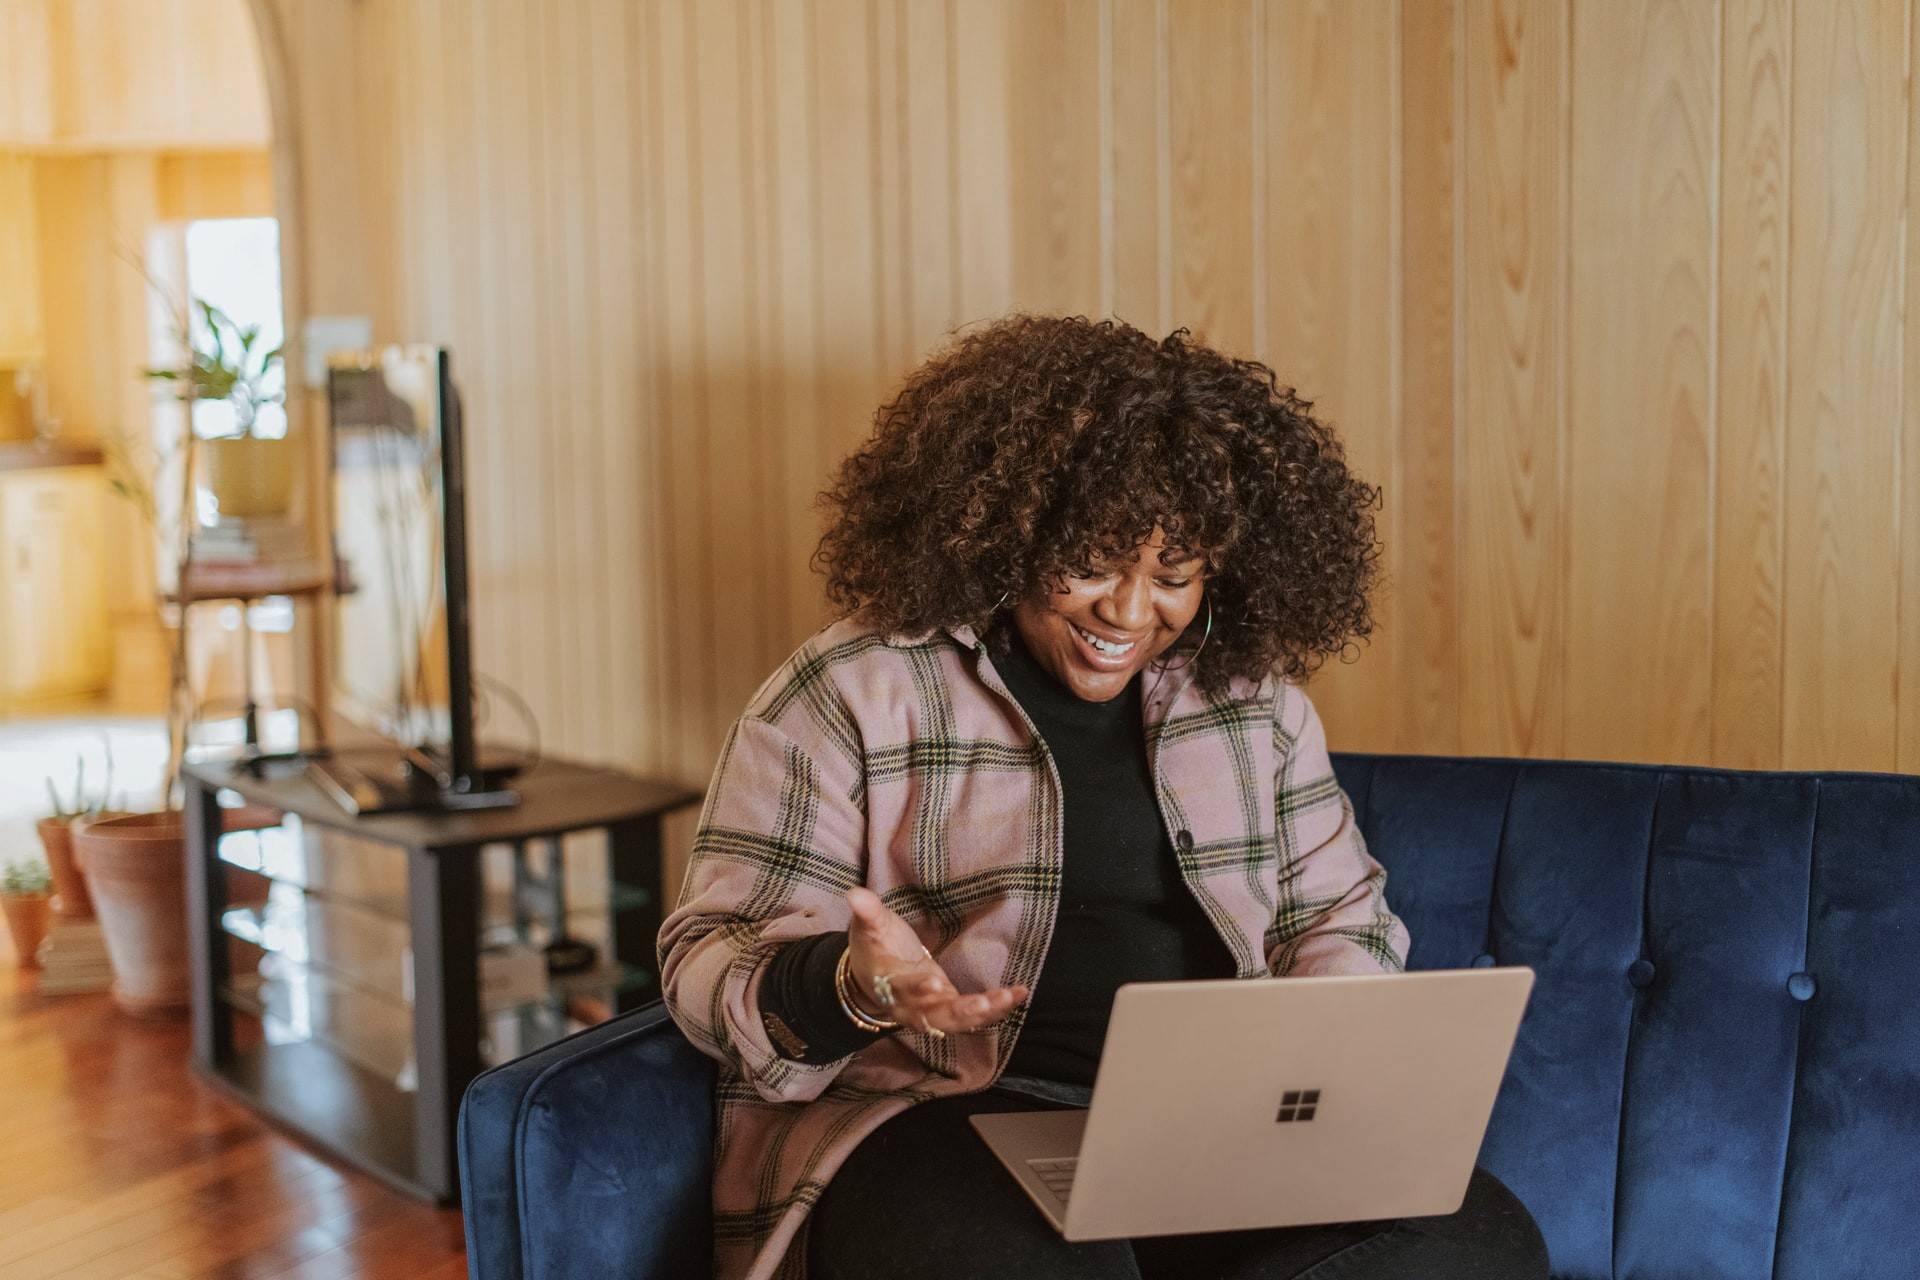 Woman sits on couch in her home and works on a laptop computer while she learns virtually.